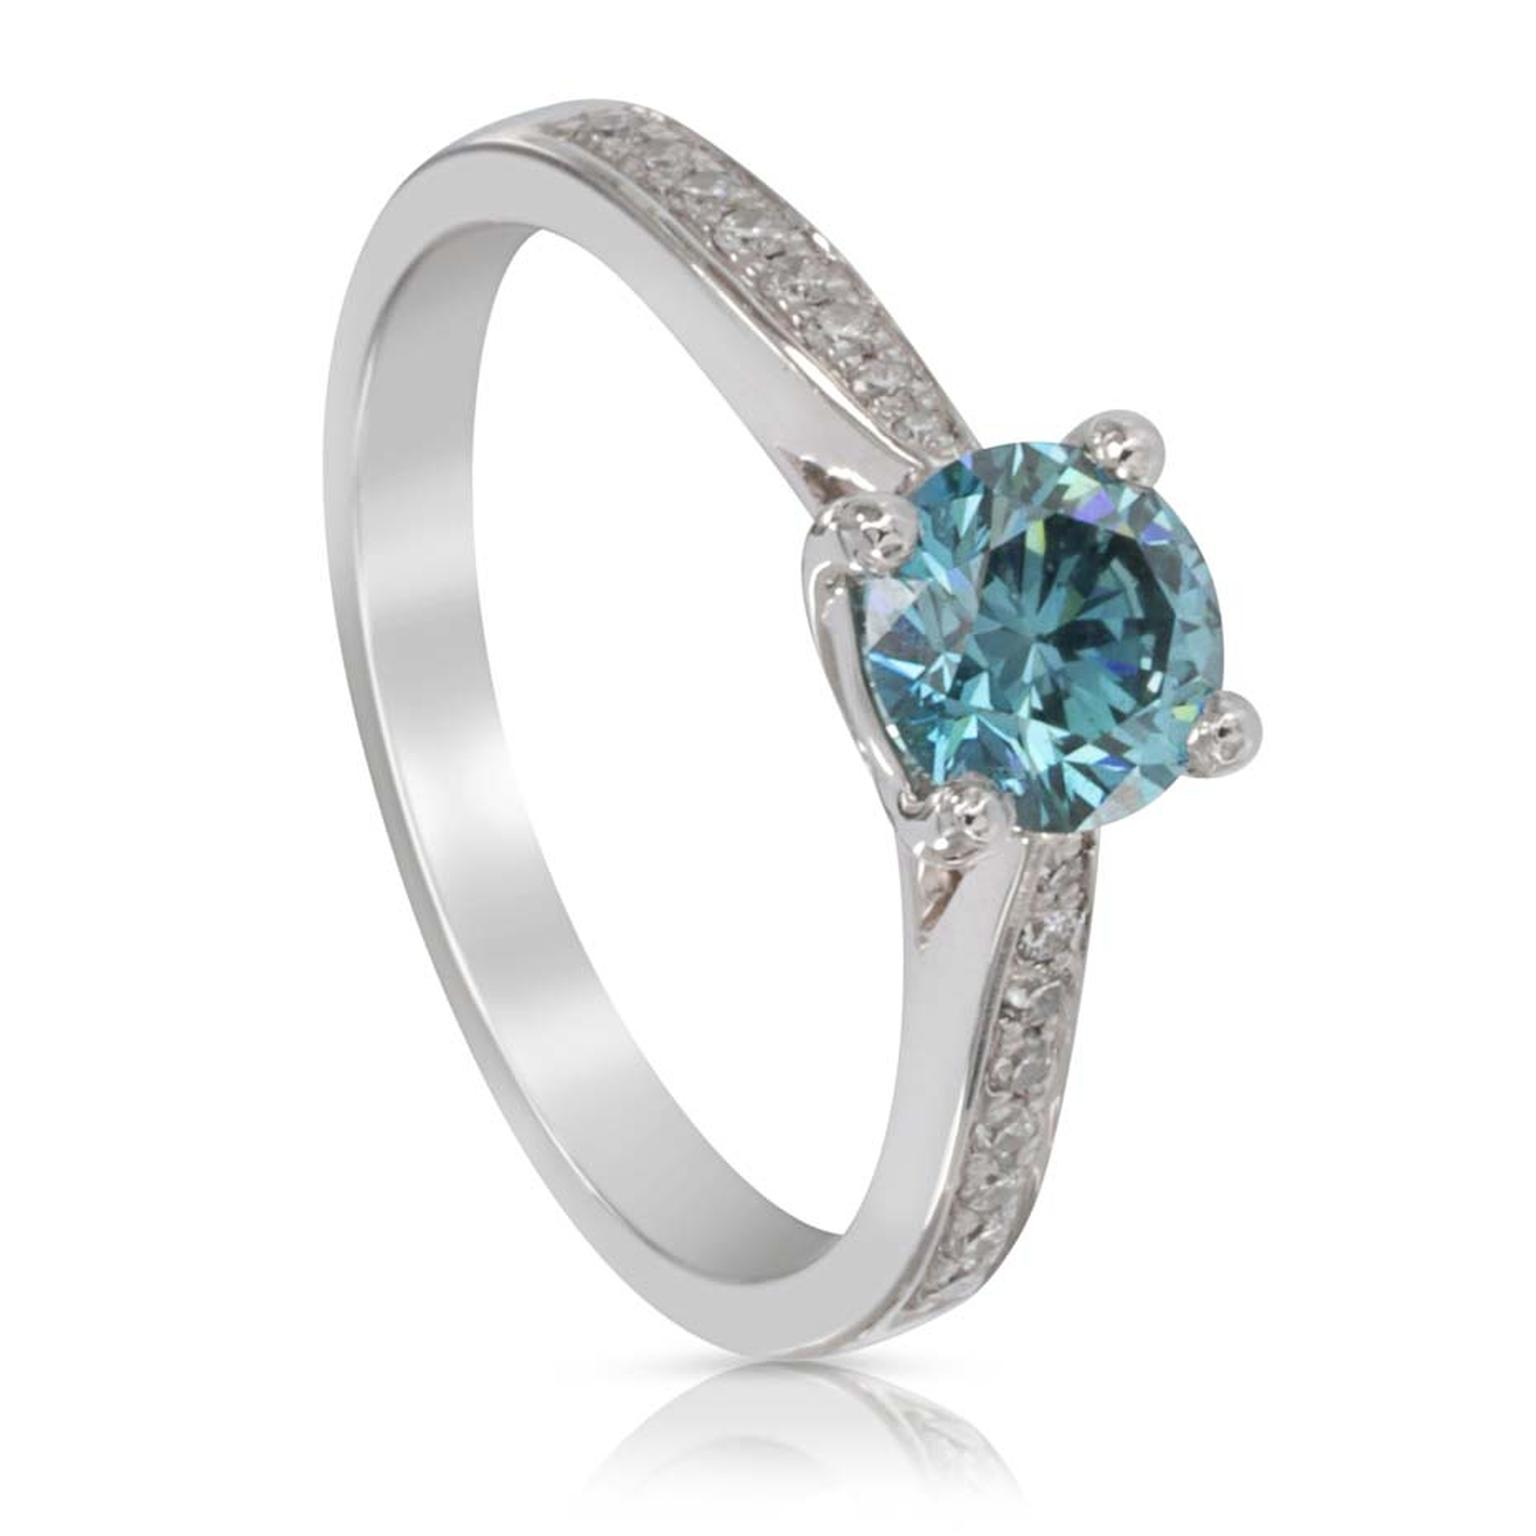 Blue and white diamond ring from Holts London featuring a round brilliant-cut treated blue diamond with diamond shoulders.